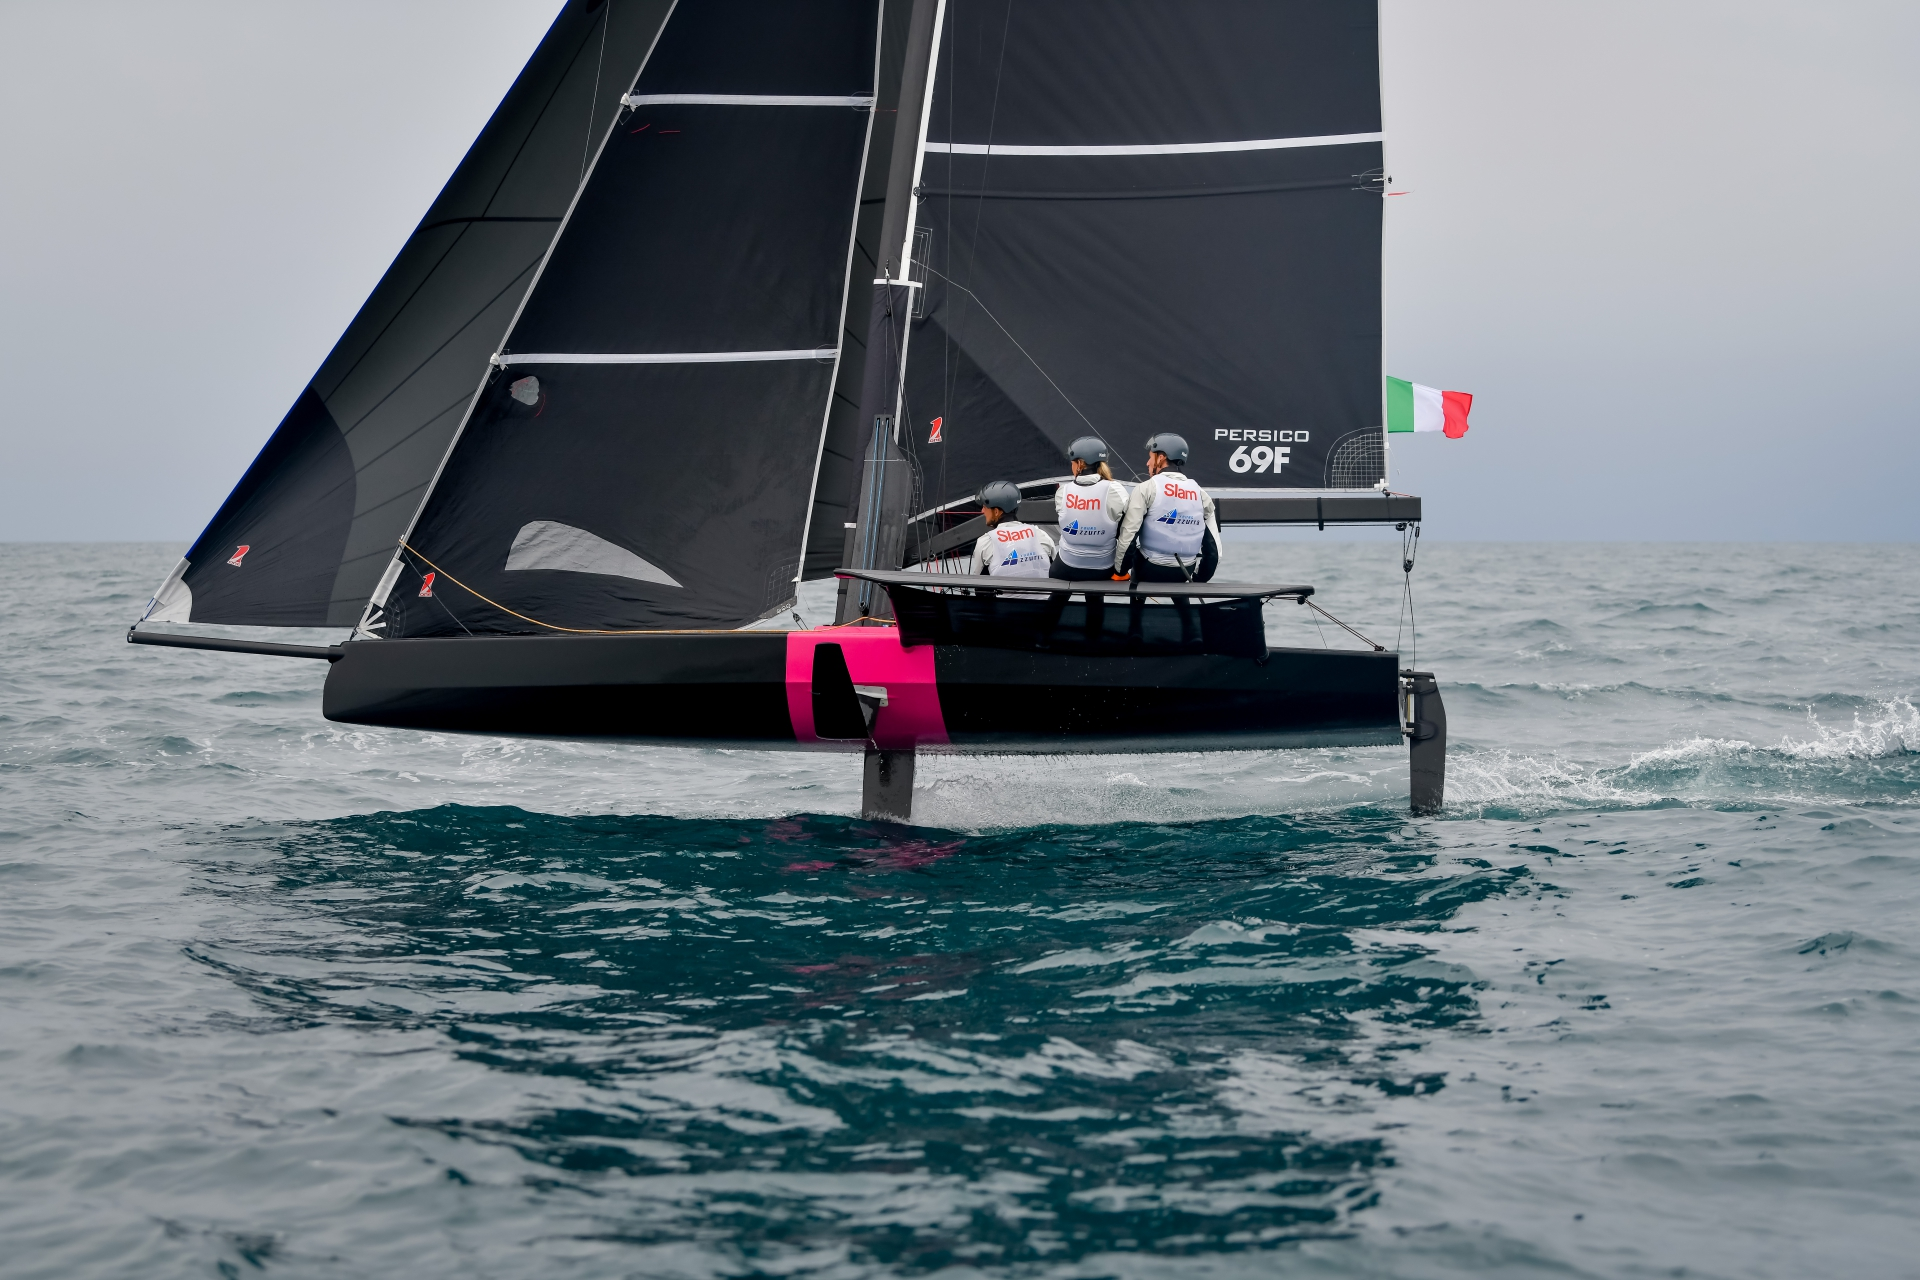 Young Azzurra si qualifica per la finale della Youth Foiling Gold Cup - MEMBER NEWS - Yacht Club Costa Smeralda